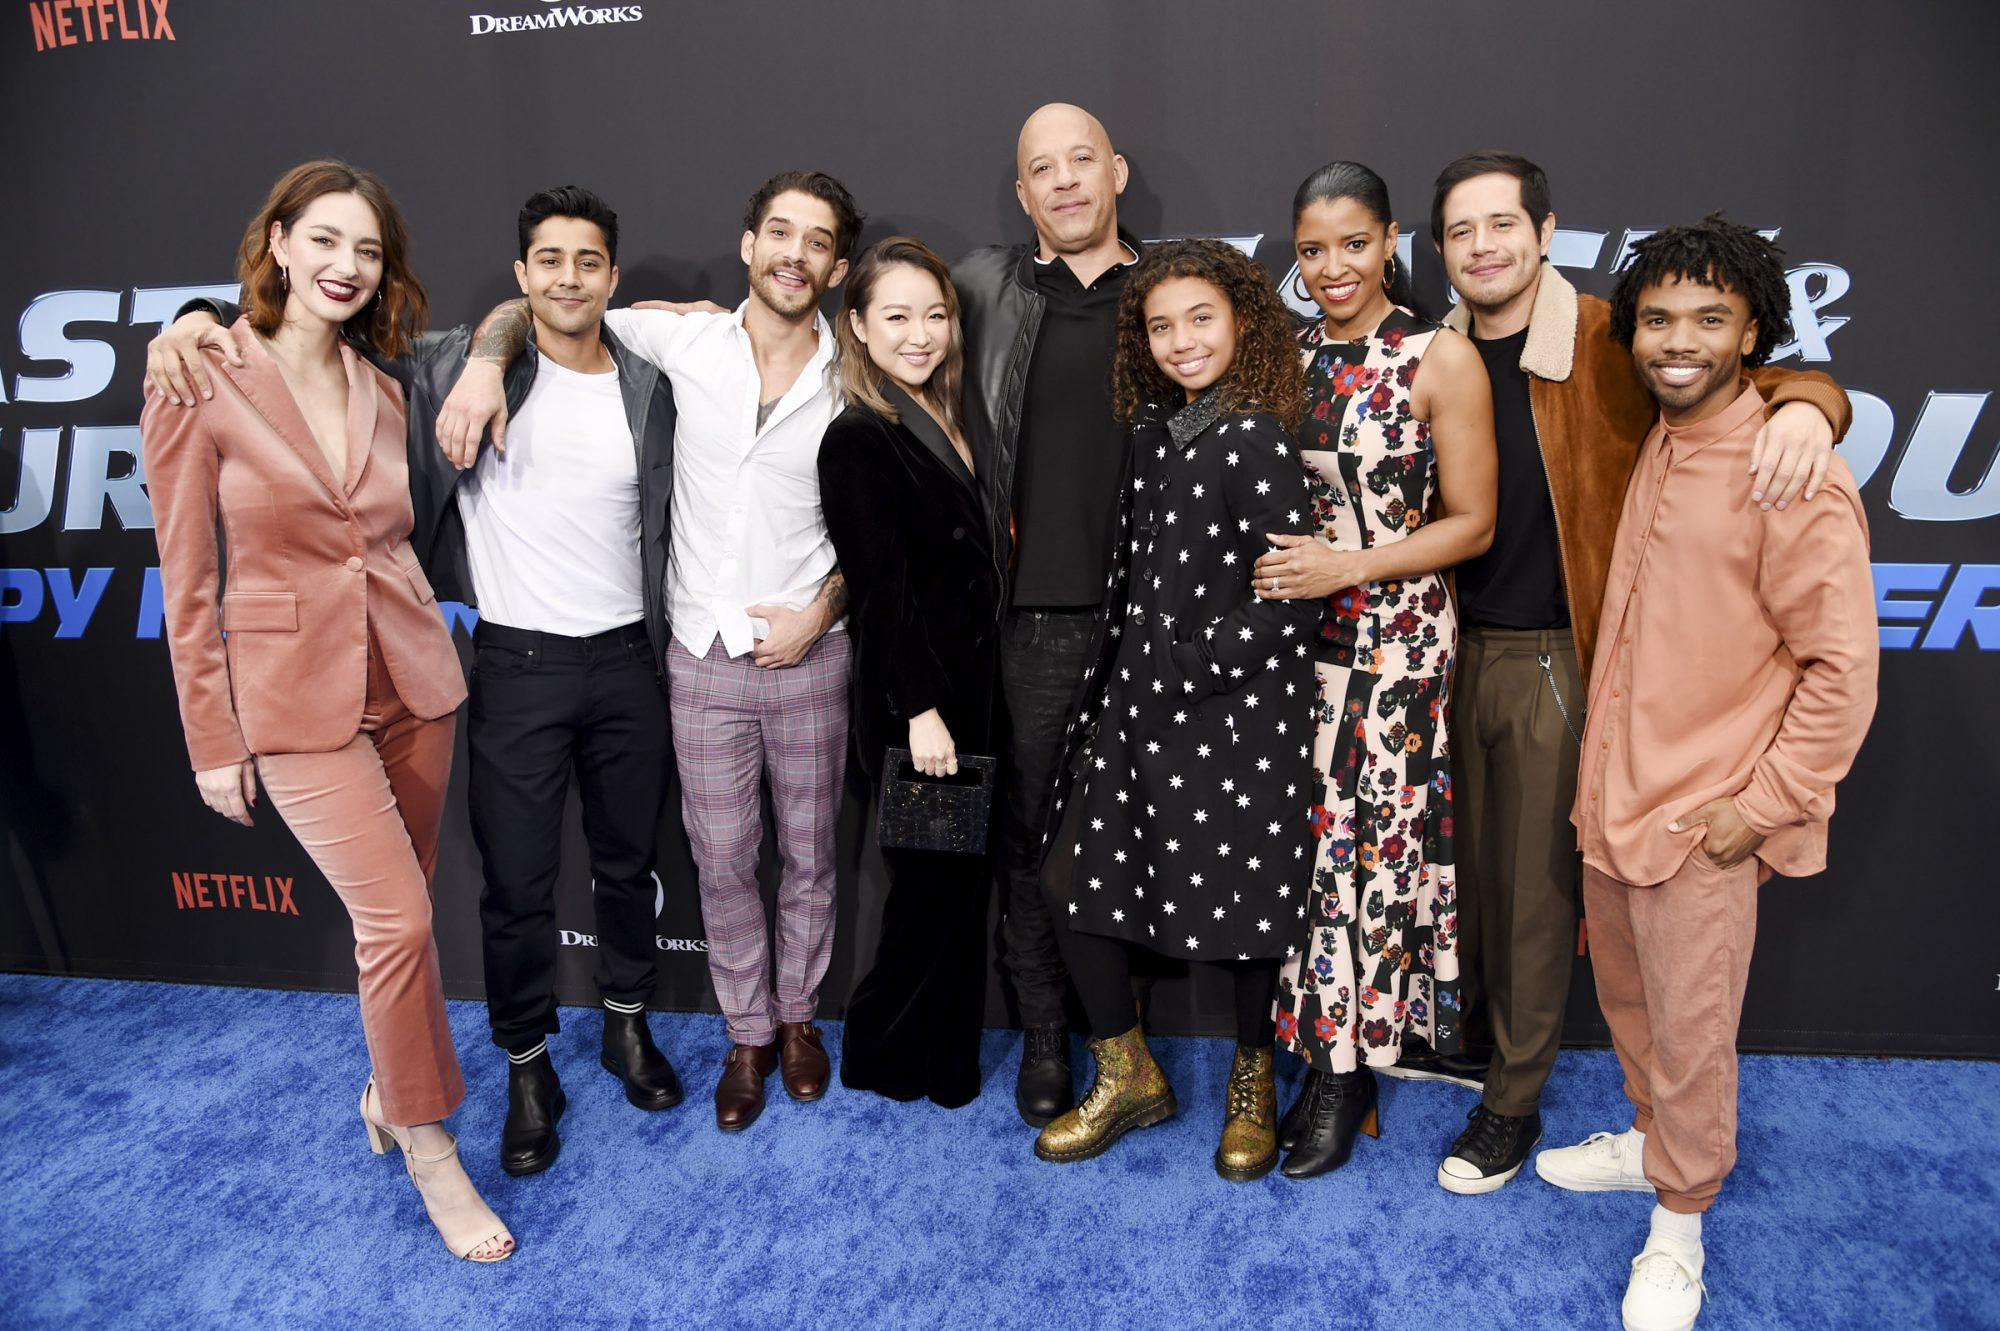 Camille Ramsey, Manish Dayal,Tyler Posey, Charlet Chung, Vin Diesel, Similce Diesel, Renée Elise Goldsberry, Jorge Diaz and Luke Youngblood